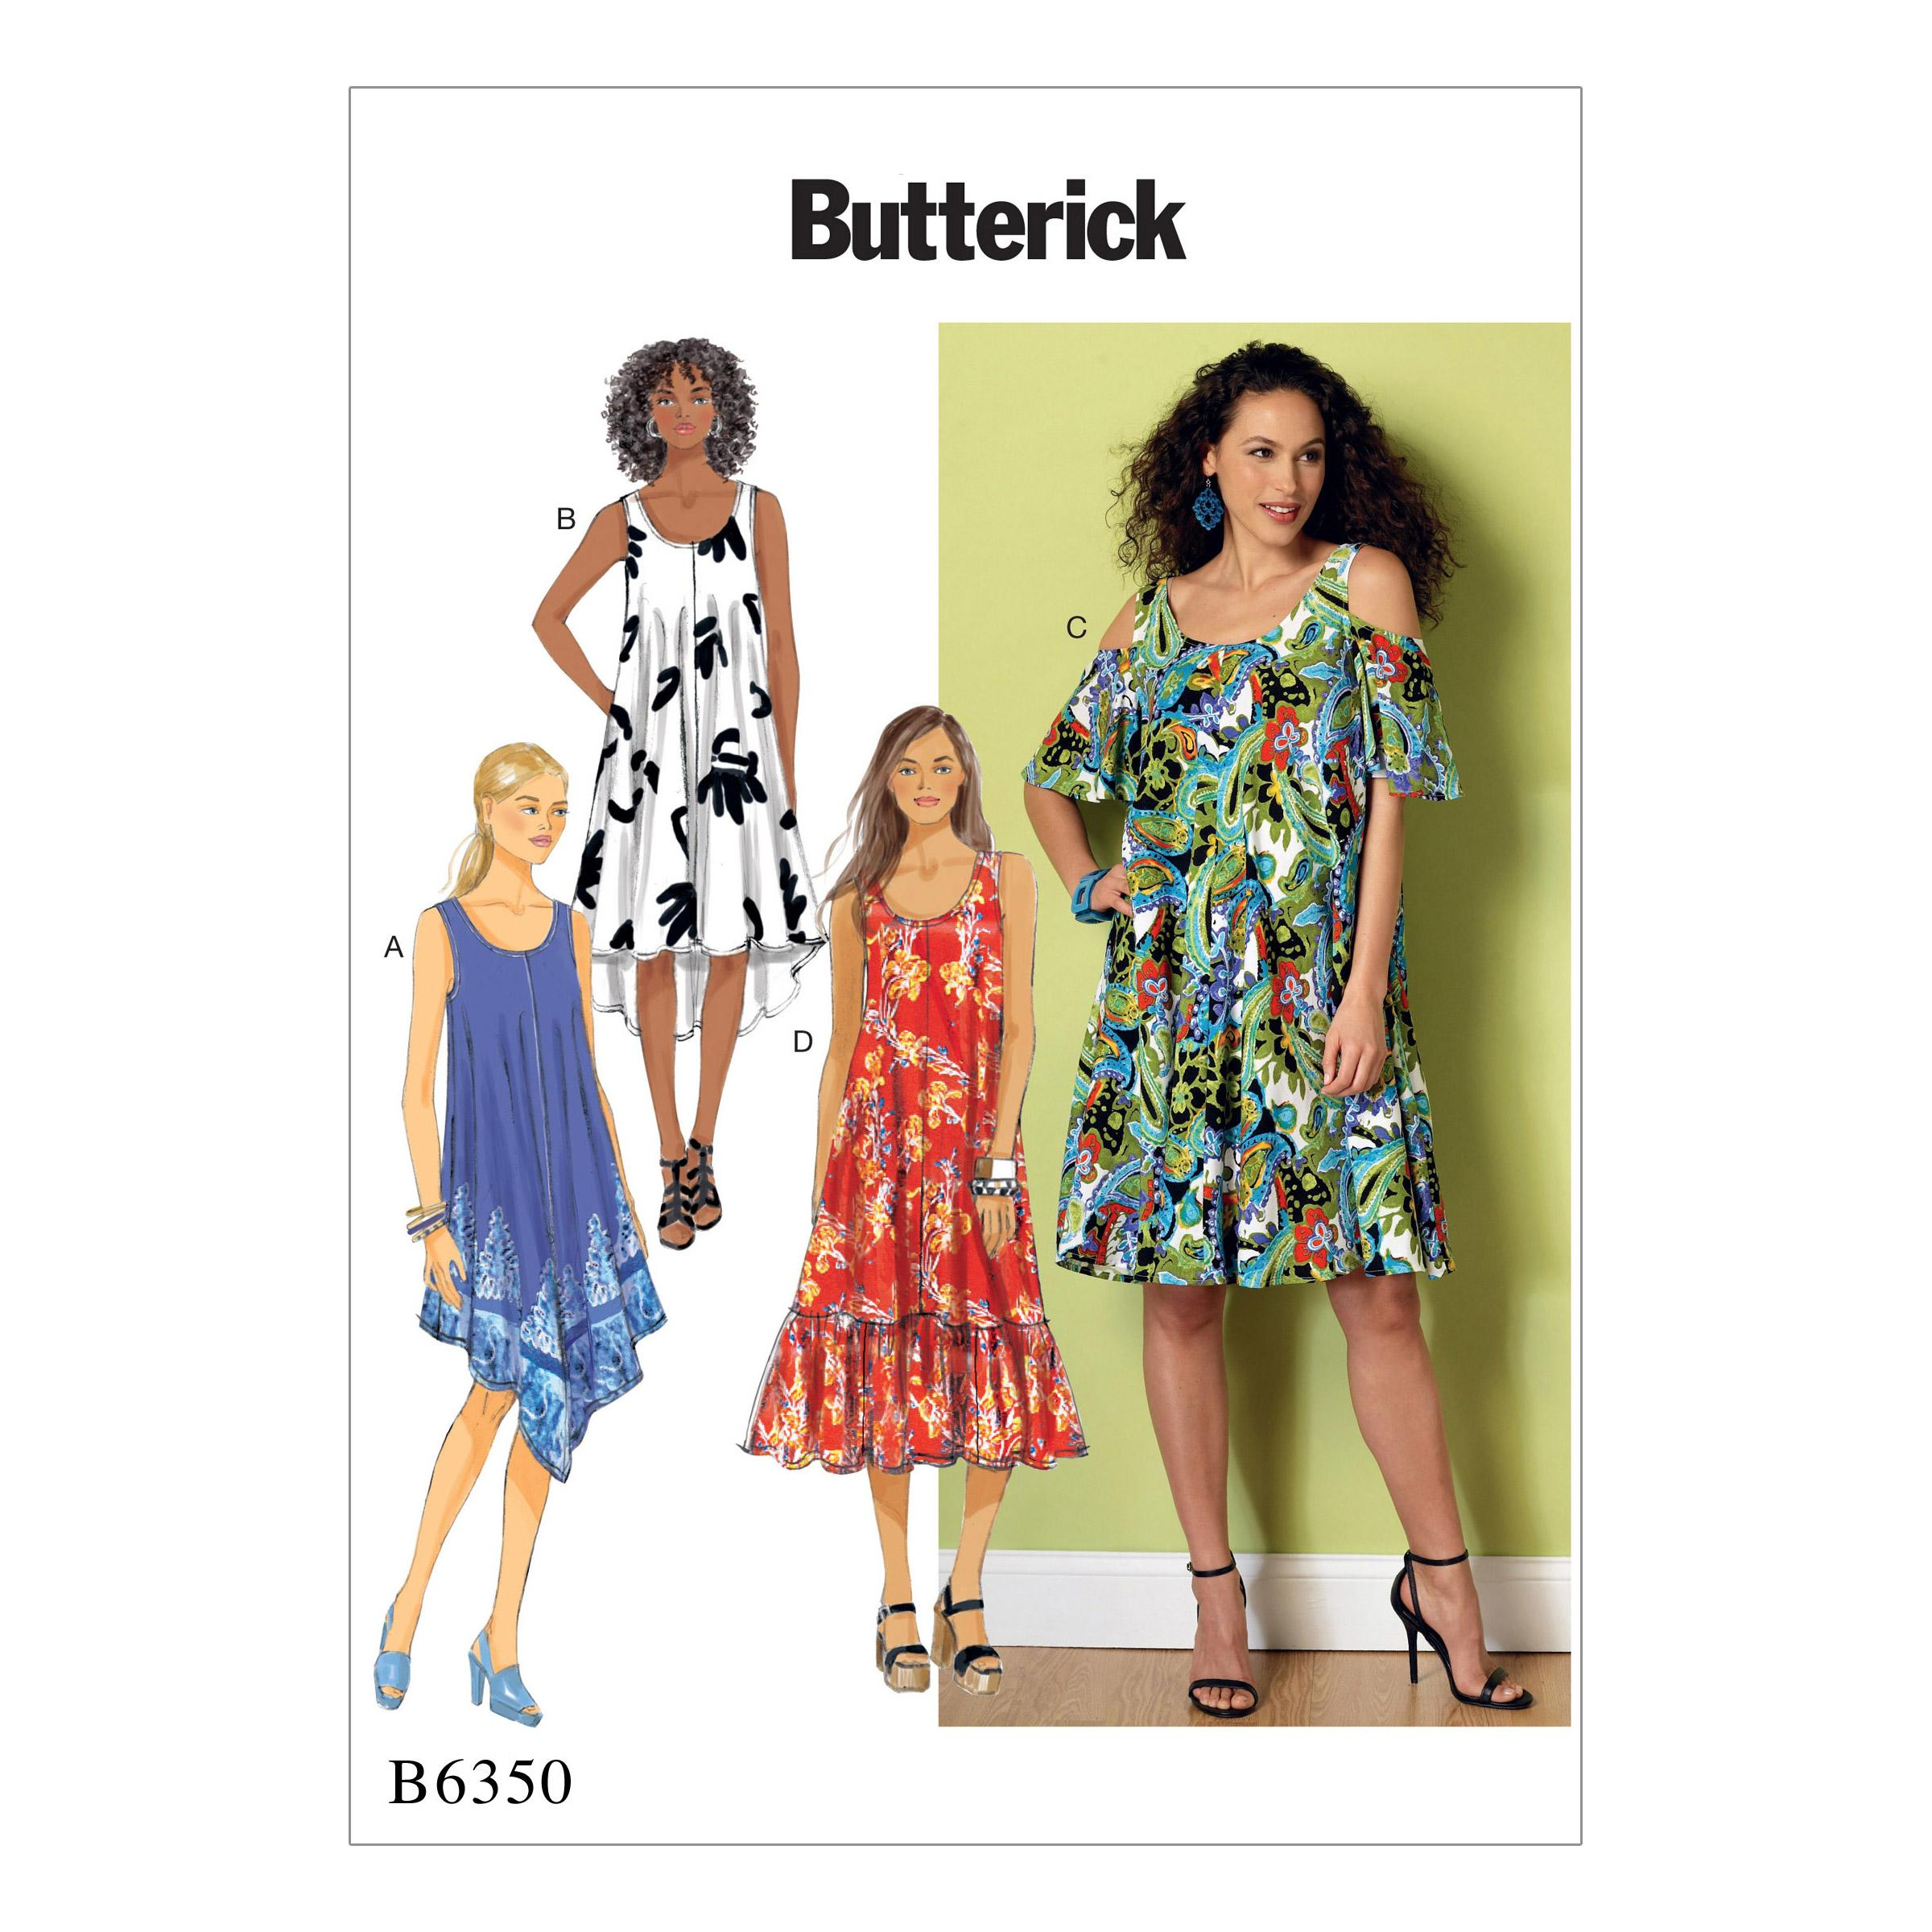 Butterick B6350 Misses' Sleeveless and Cold Shoulder Dresses